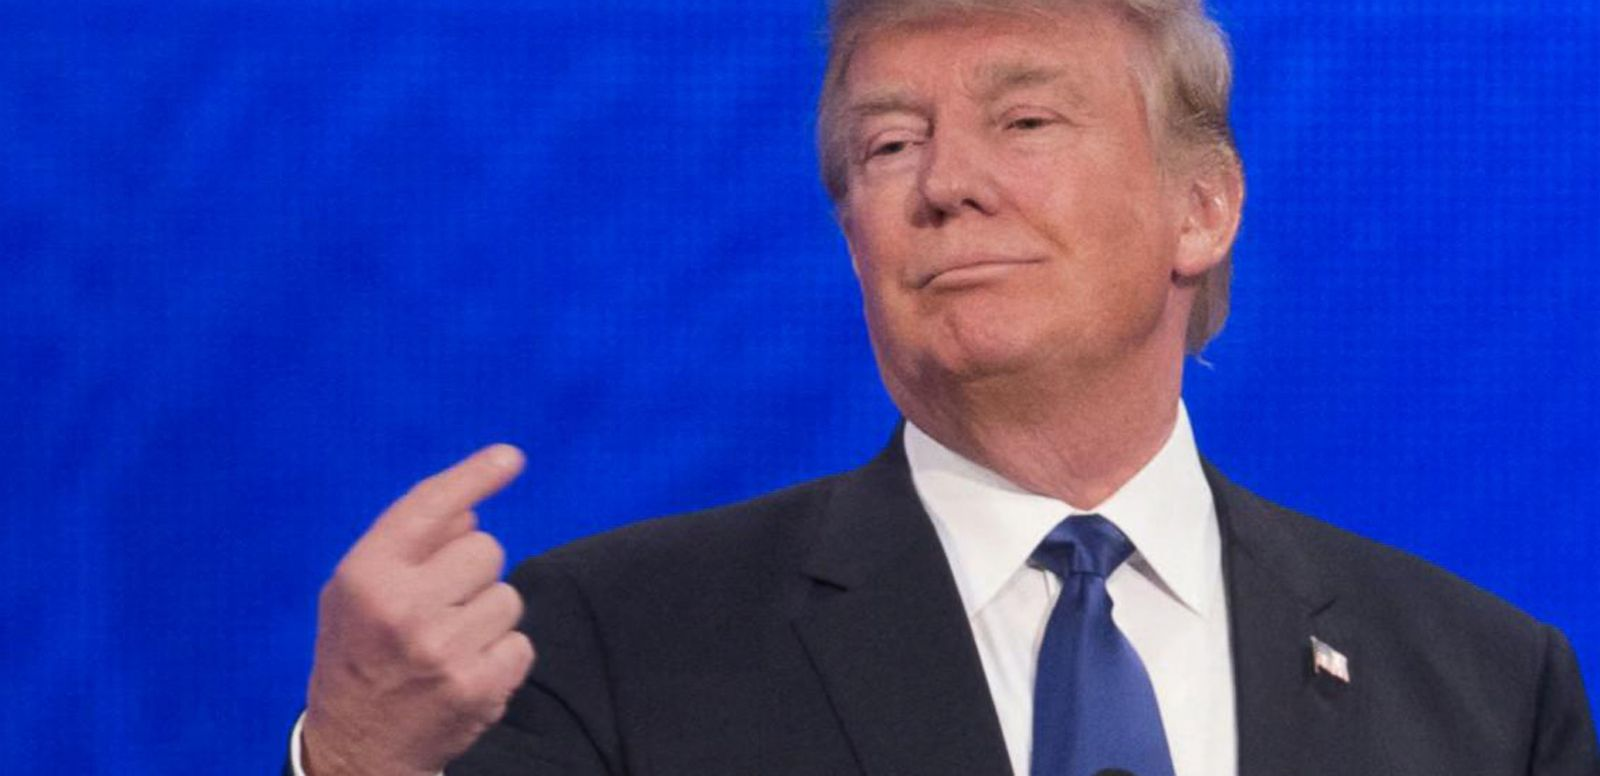 VIDEO: What Impact Will Eighth Debate Have on Republican Presidential Race?